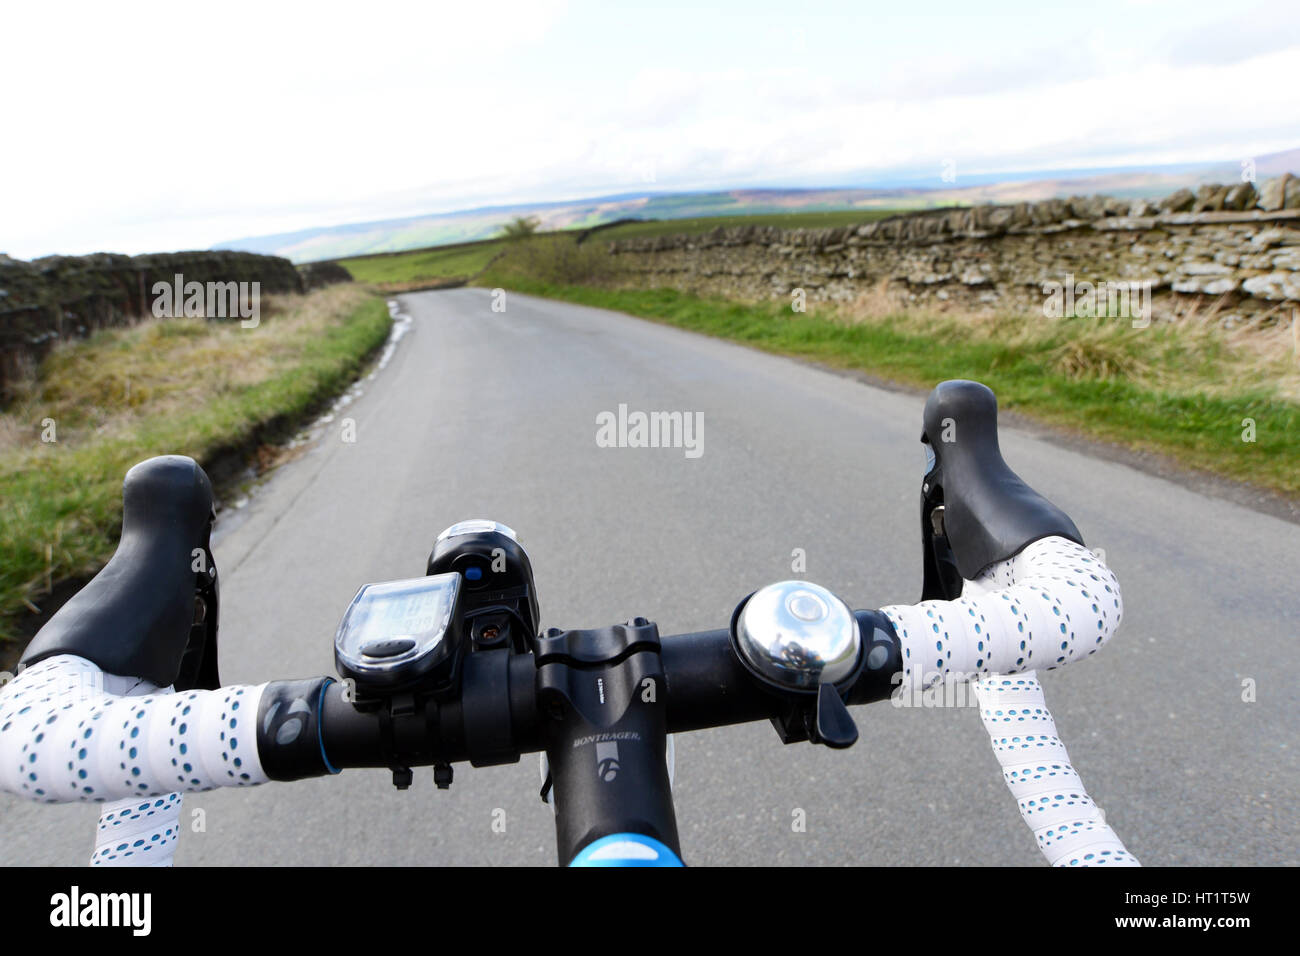 Cycling along a quite country lane low angle of the cyclist handlebars - Stock Image